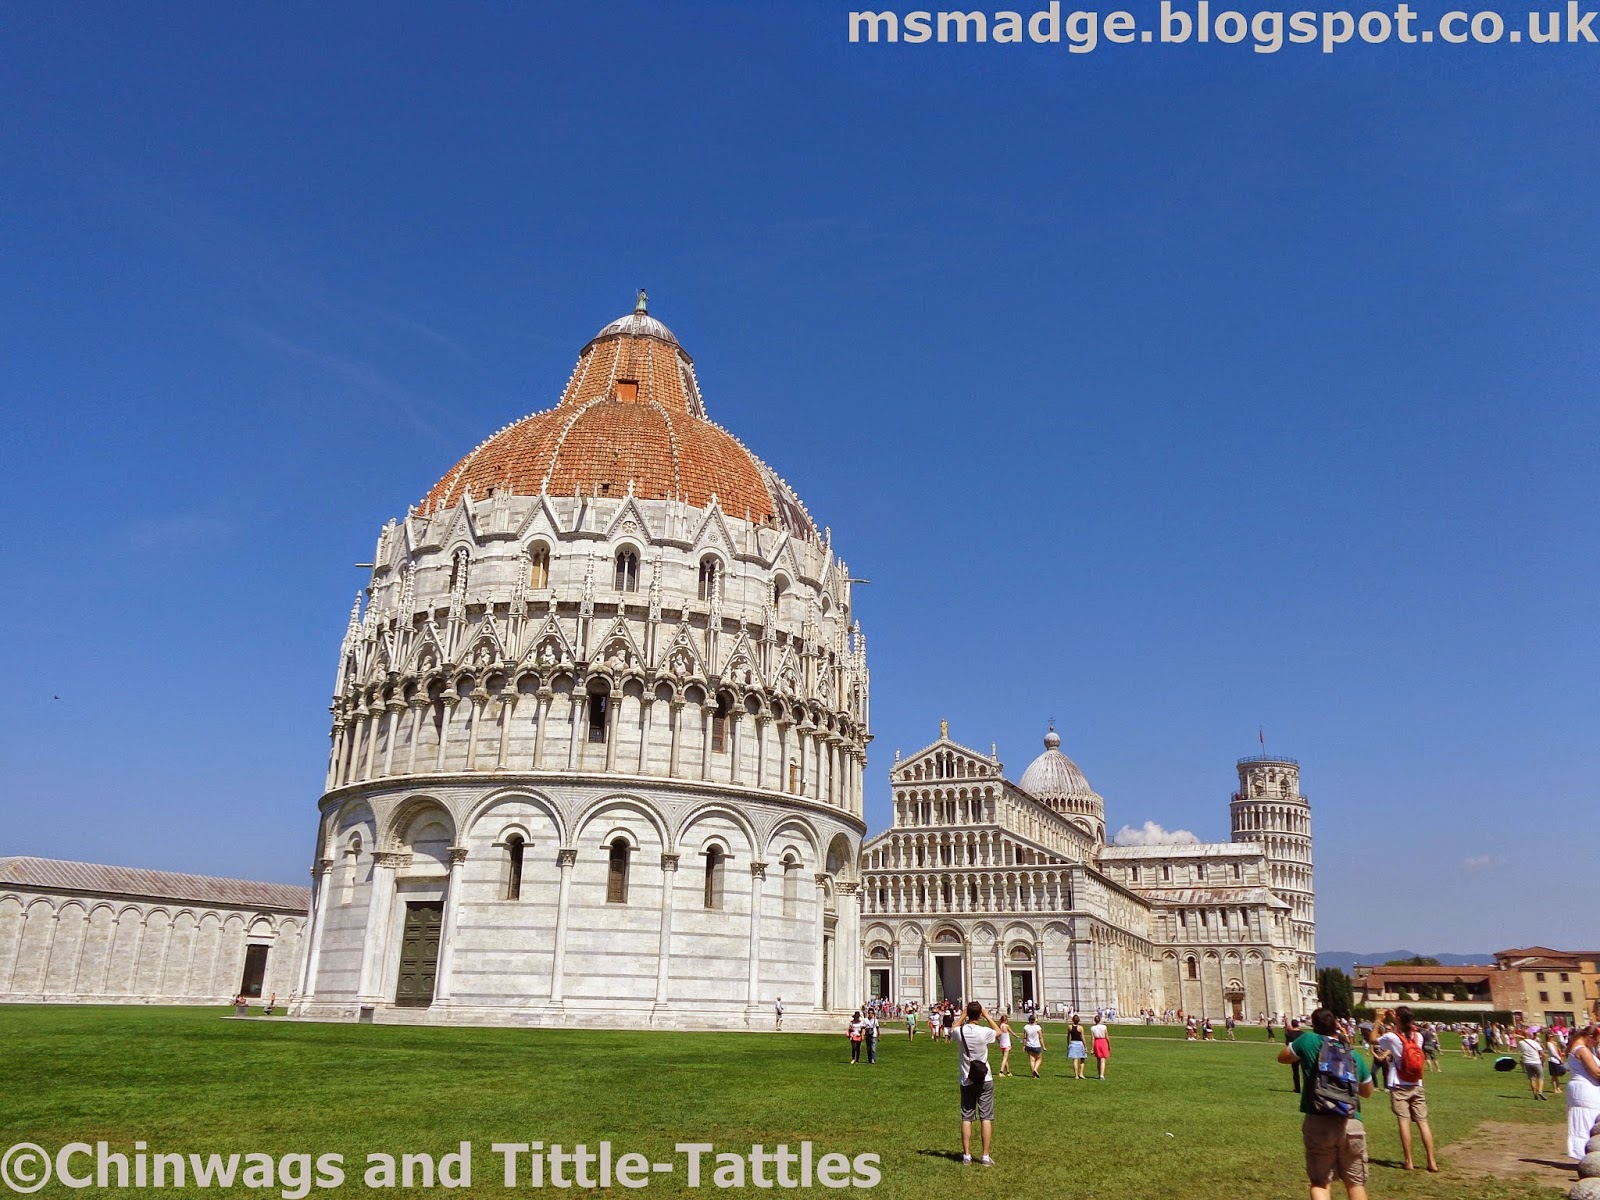 Duomo Leaning Tower Pisa Italy For Desktop - duomo leaning tower pisa italy wallpapers